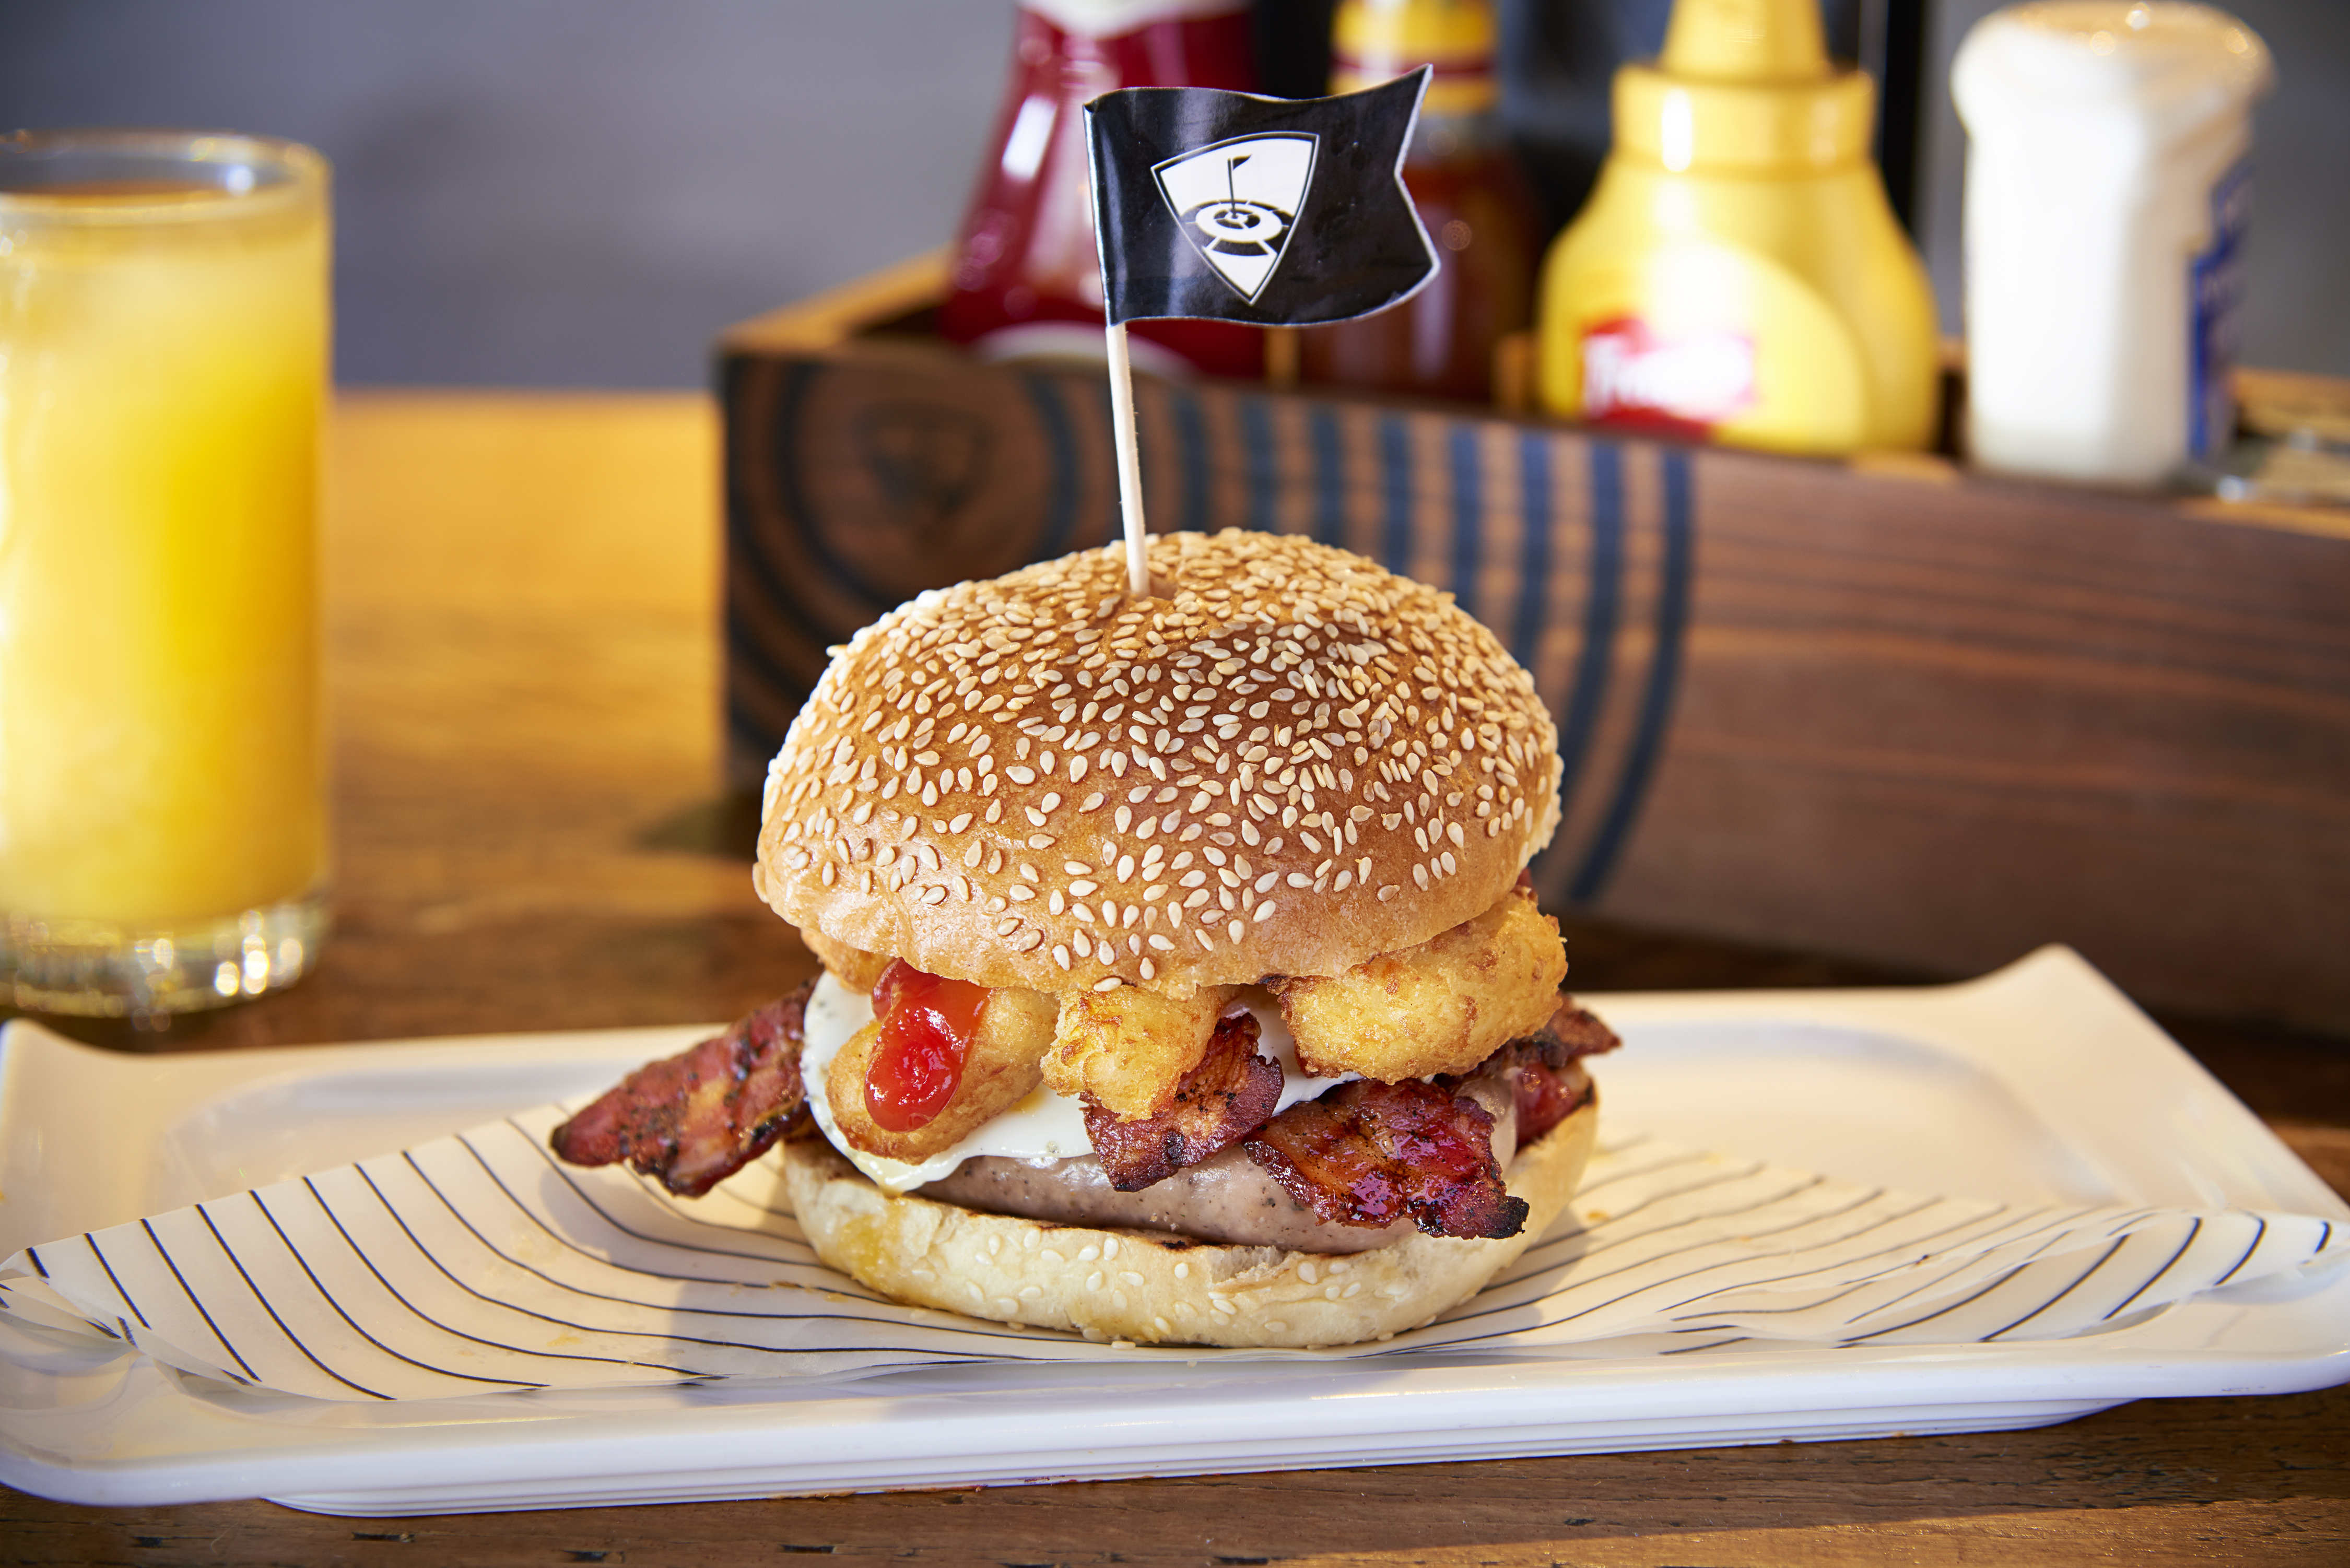 Topgolf breakfast bap with sausages. hash browns, bacon and an egg